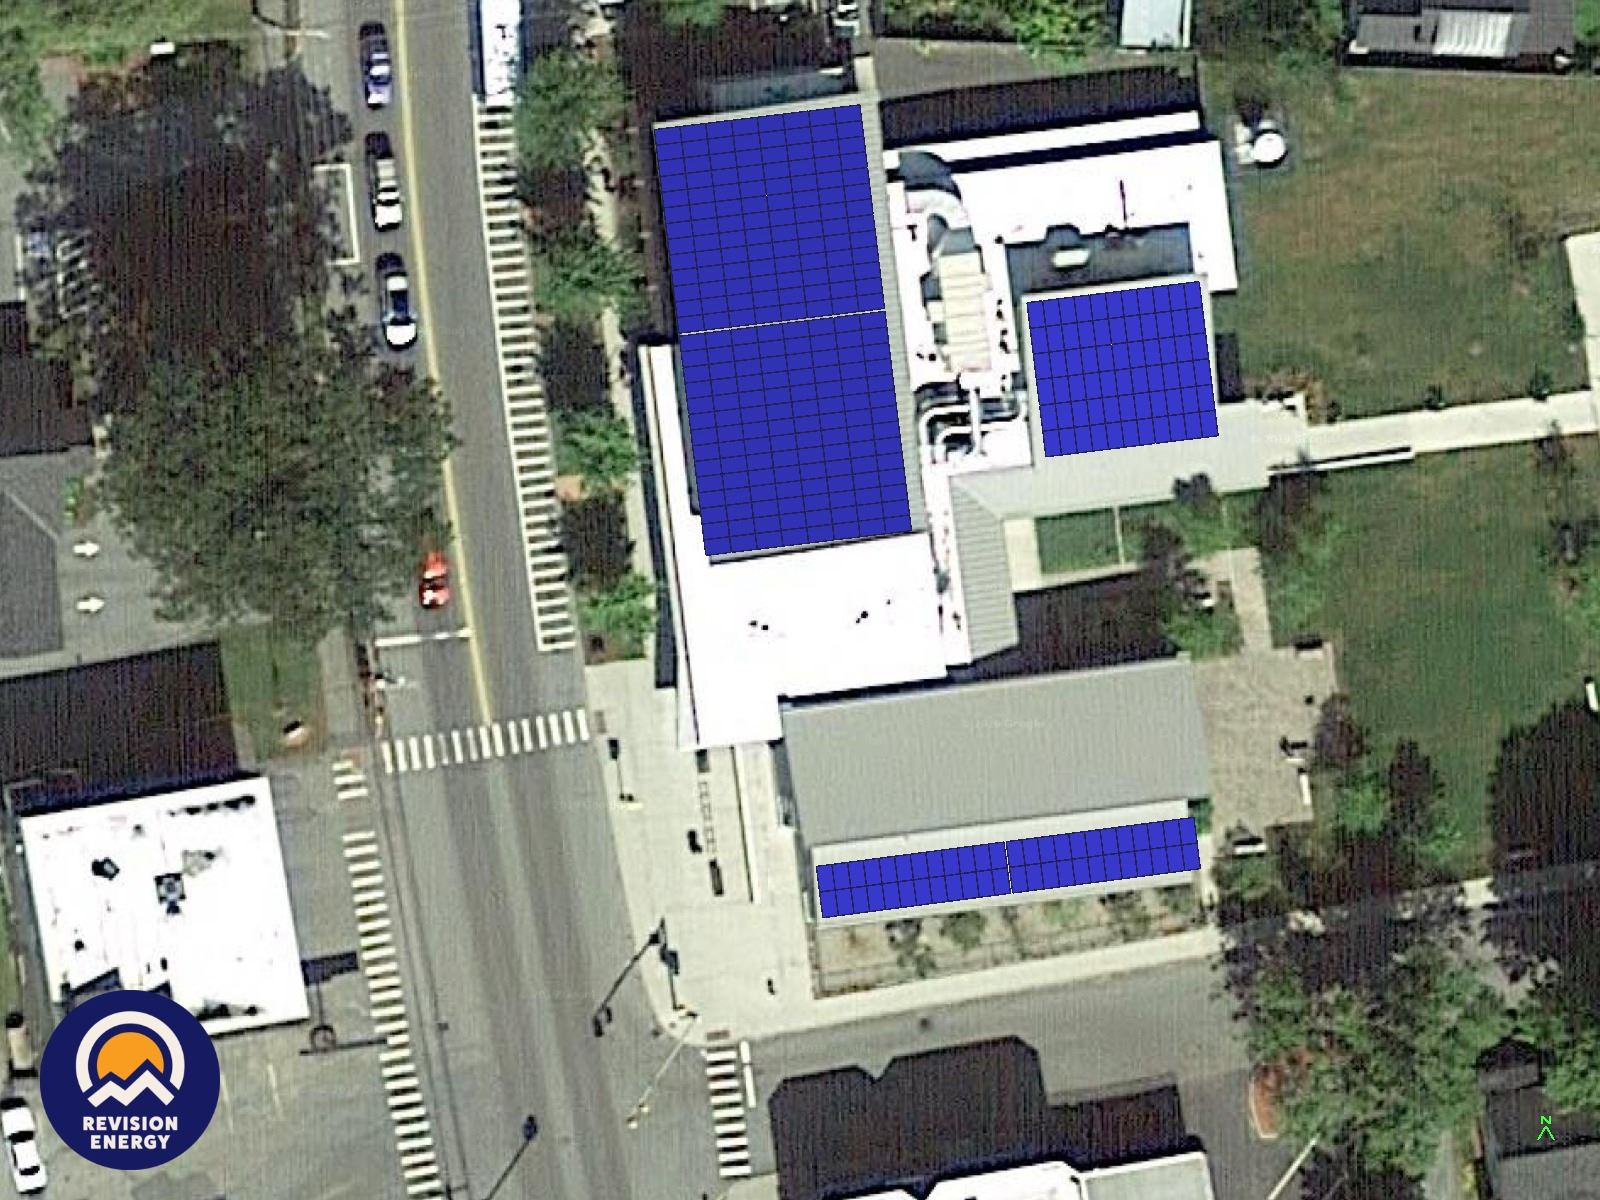 Kilton Public Library roof with solar array depiction Opens in new window